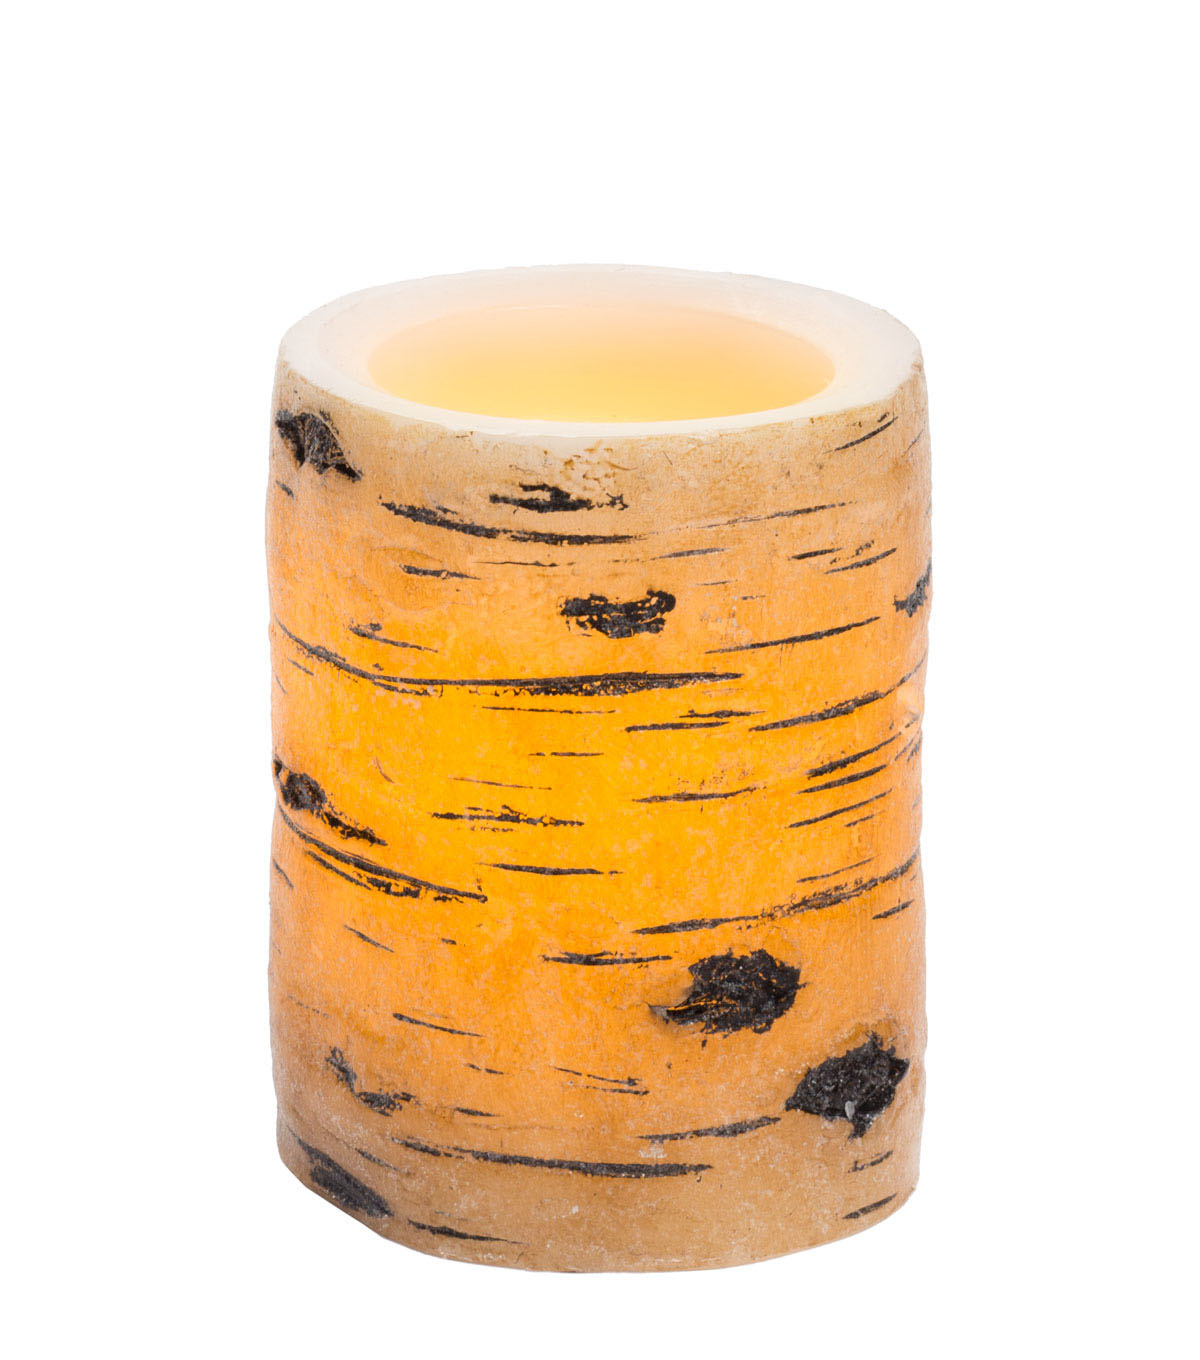 Hudson 43™ Candle & Light Collection 3X4 Tan Birch Bark Pillars With 5 Hour Timer